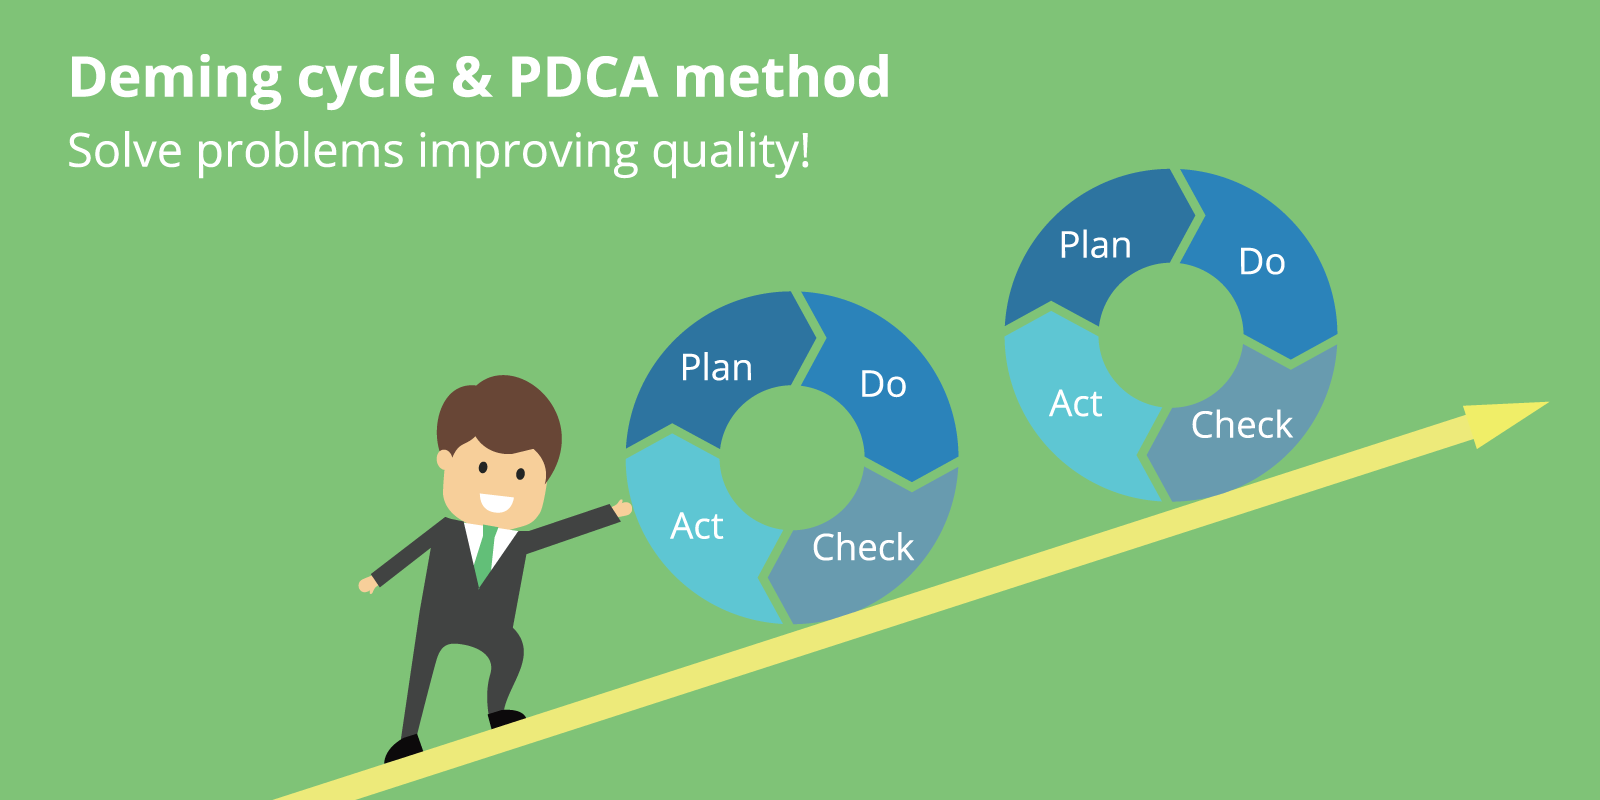 Roue-de-Deming-PDCA-method